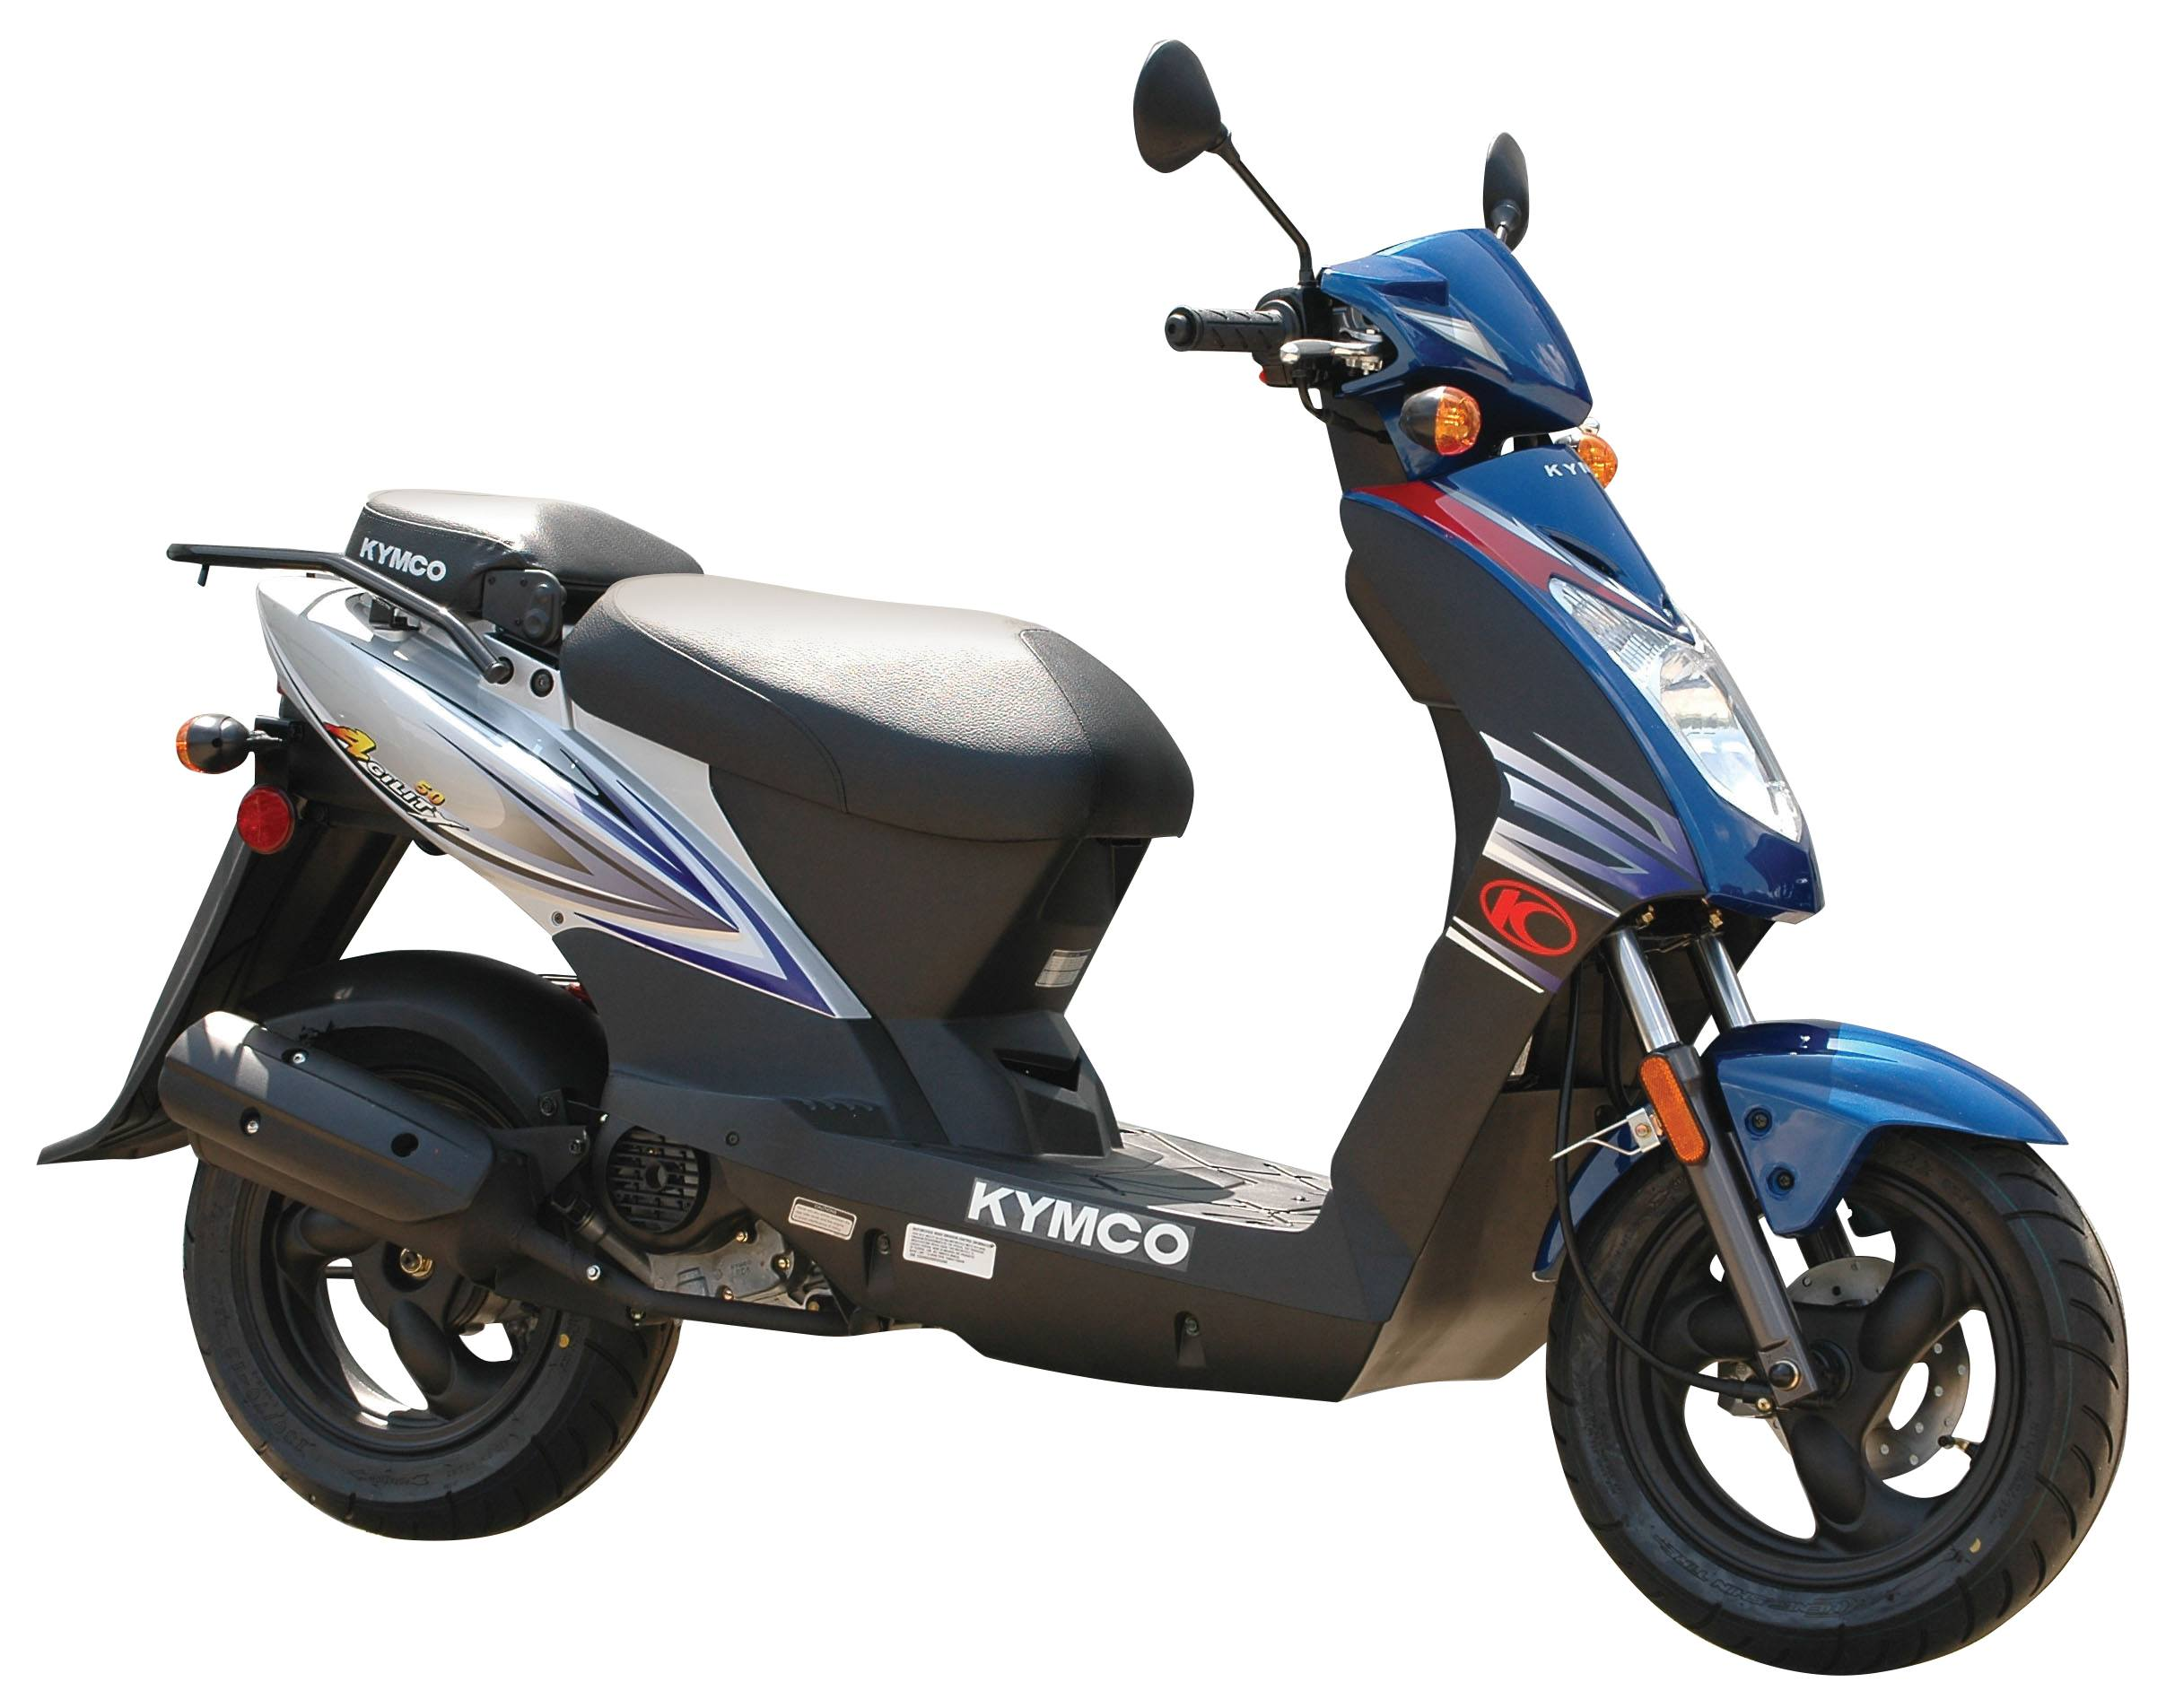 2016 Kymco Agility 50 in Arlington Heights, Illinois